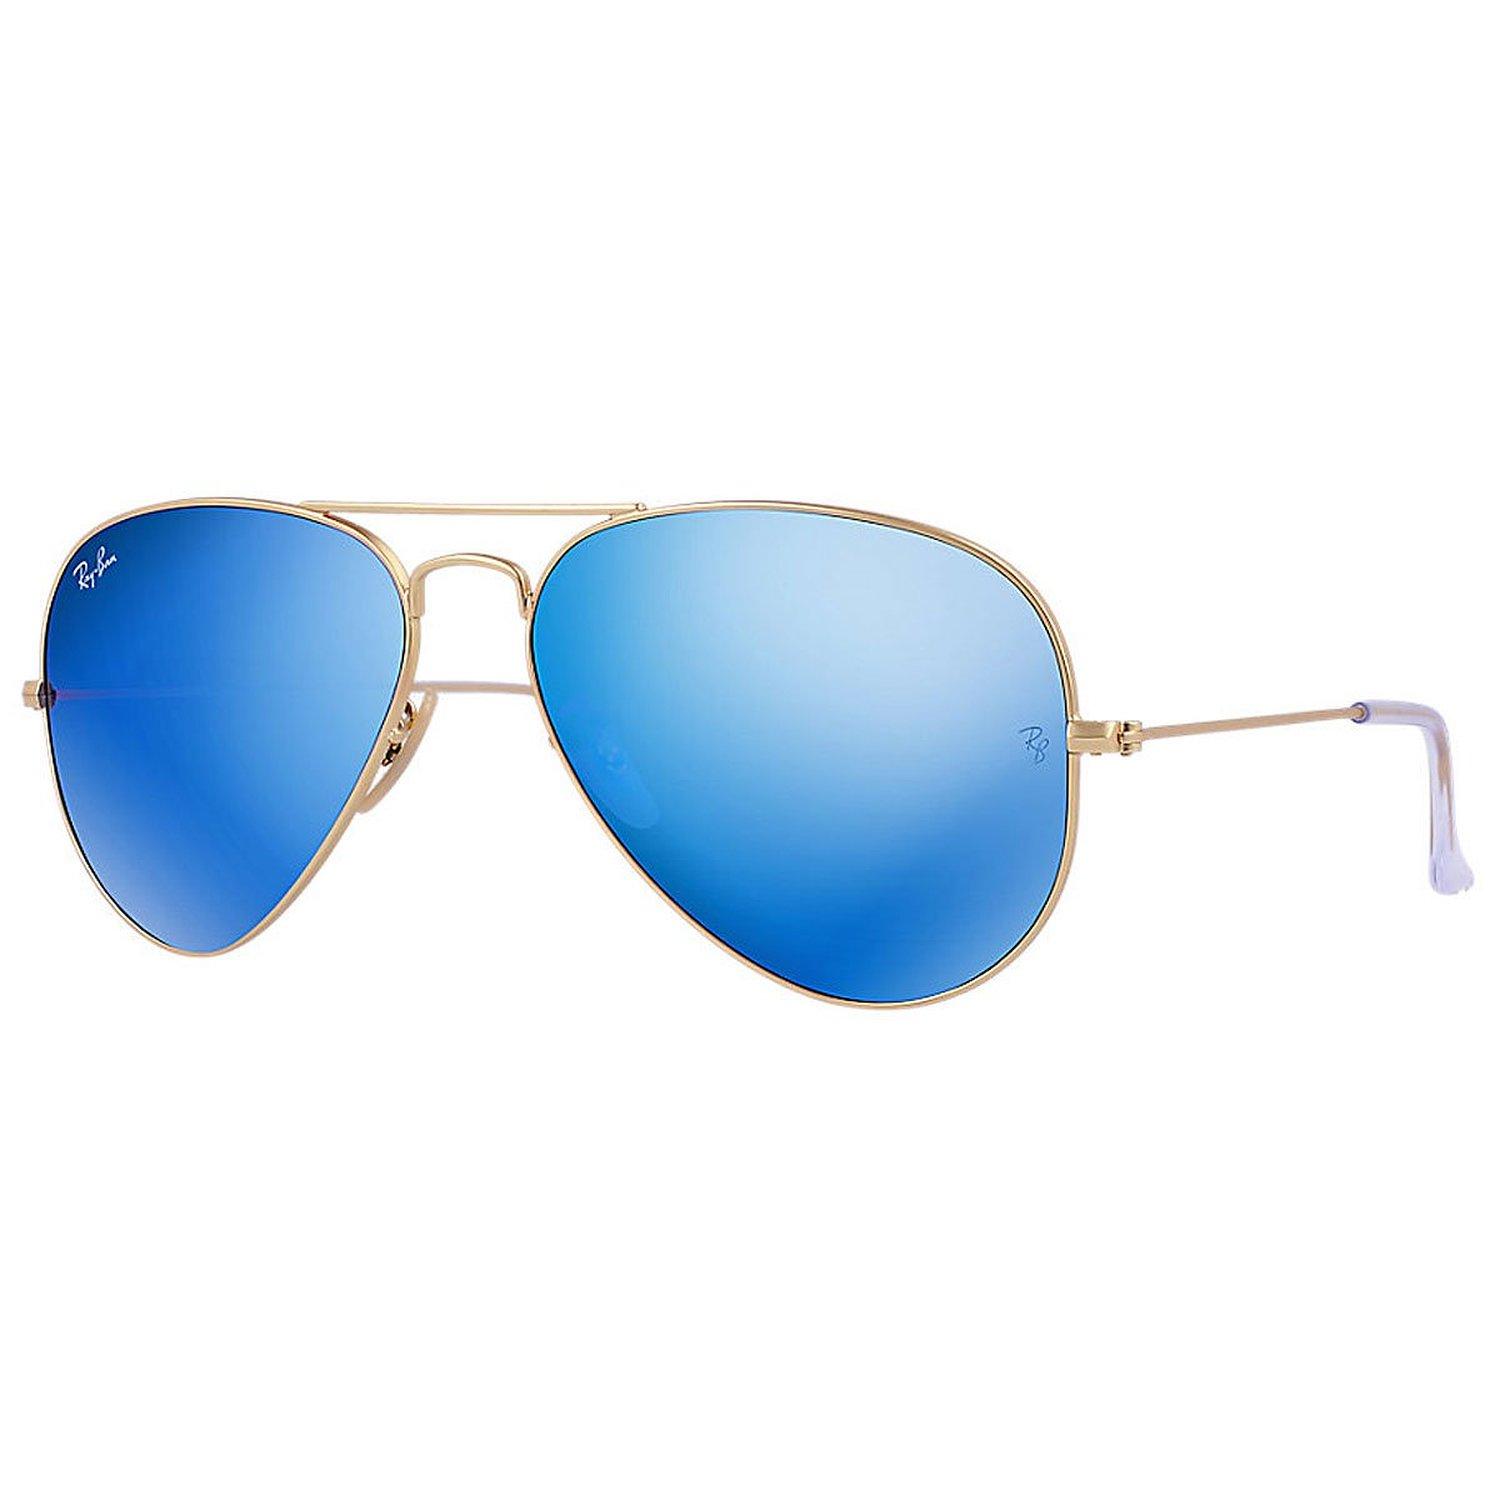 Ray Ban RB3025 Large Aviator Sunglasses,Gold Frame/Blue Mirror Lens,55 mm: Ray-Ban